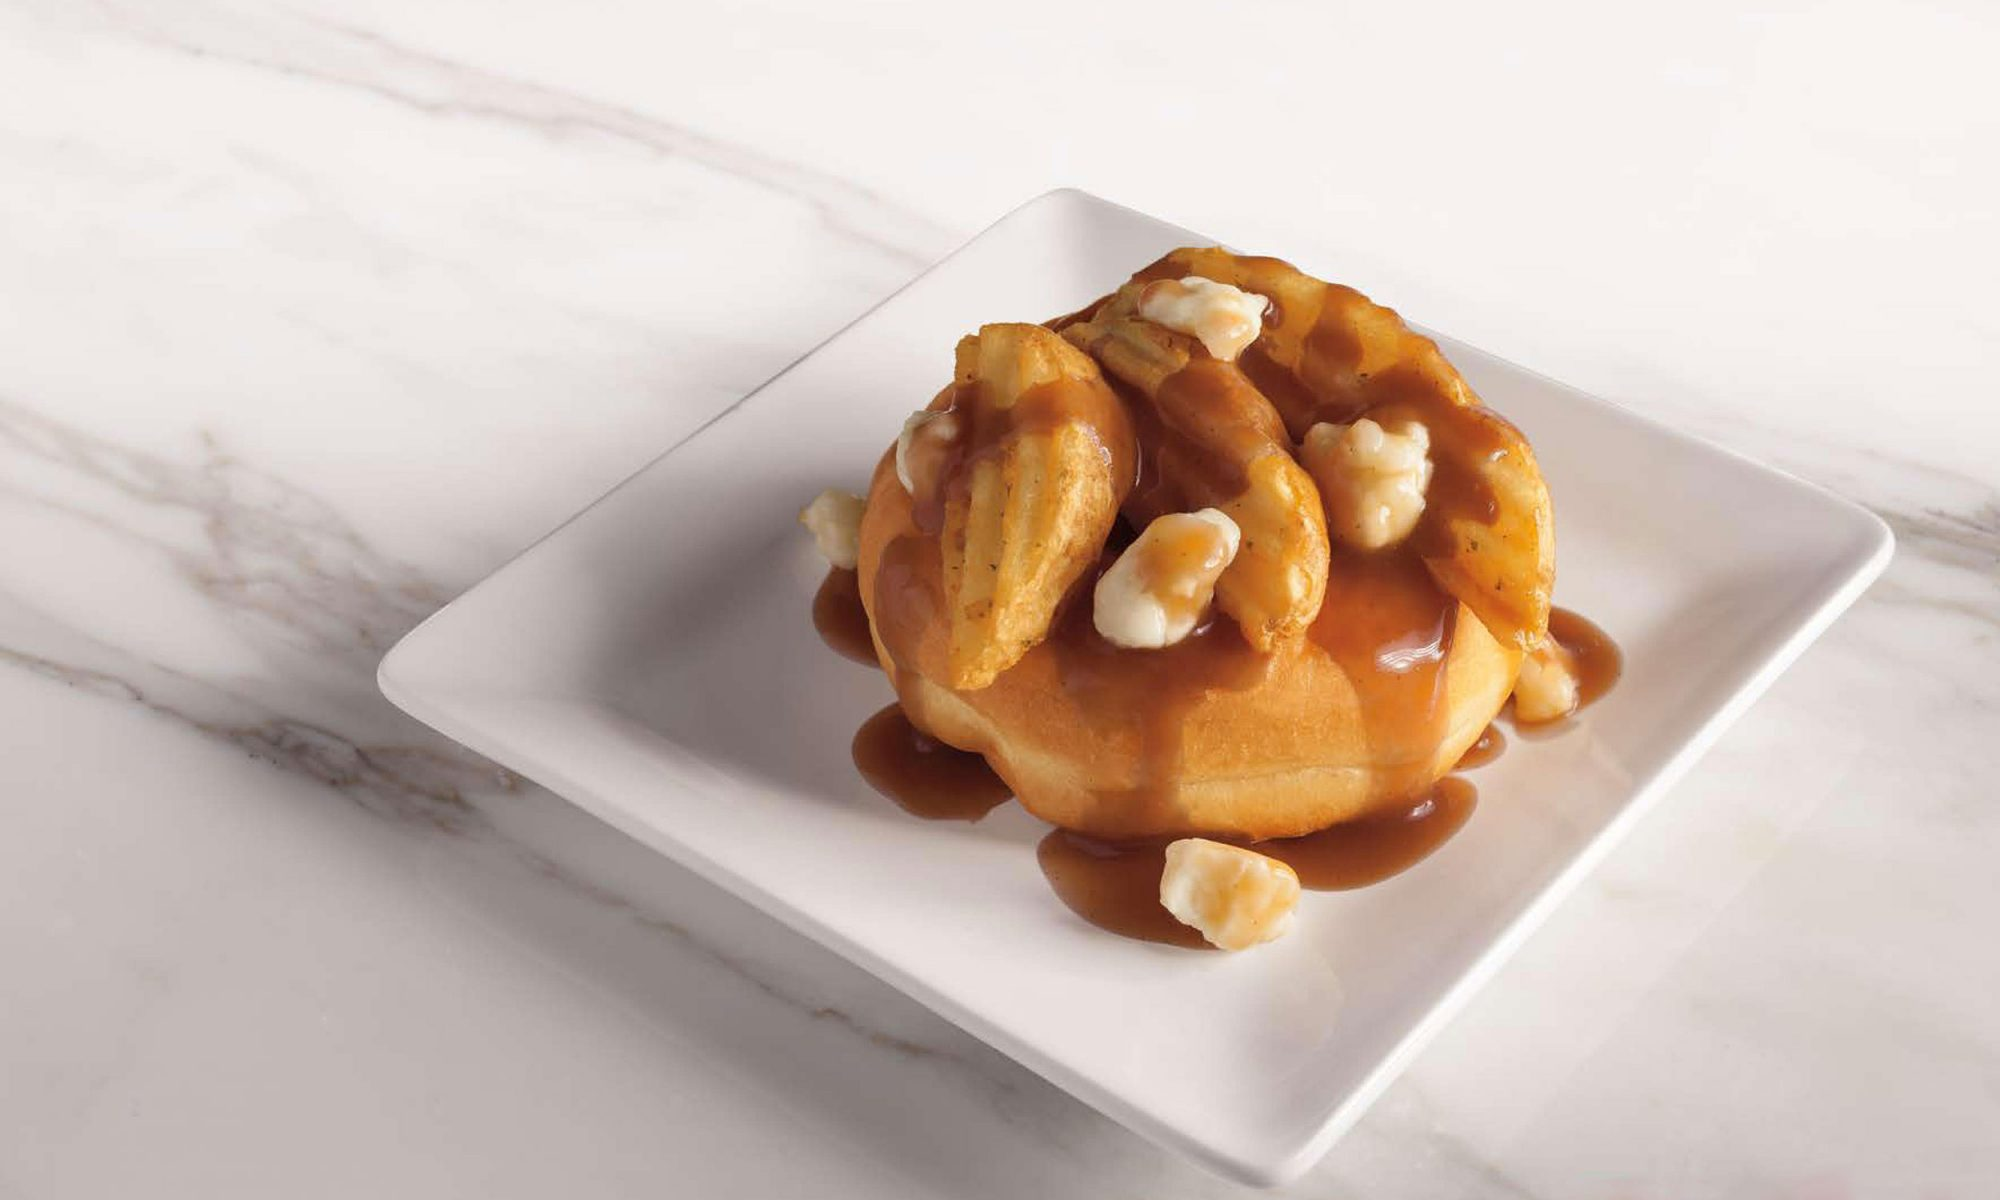 EC: The New Tim Hortons Poutine Doughnut Is Peak Canada